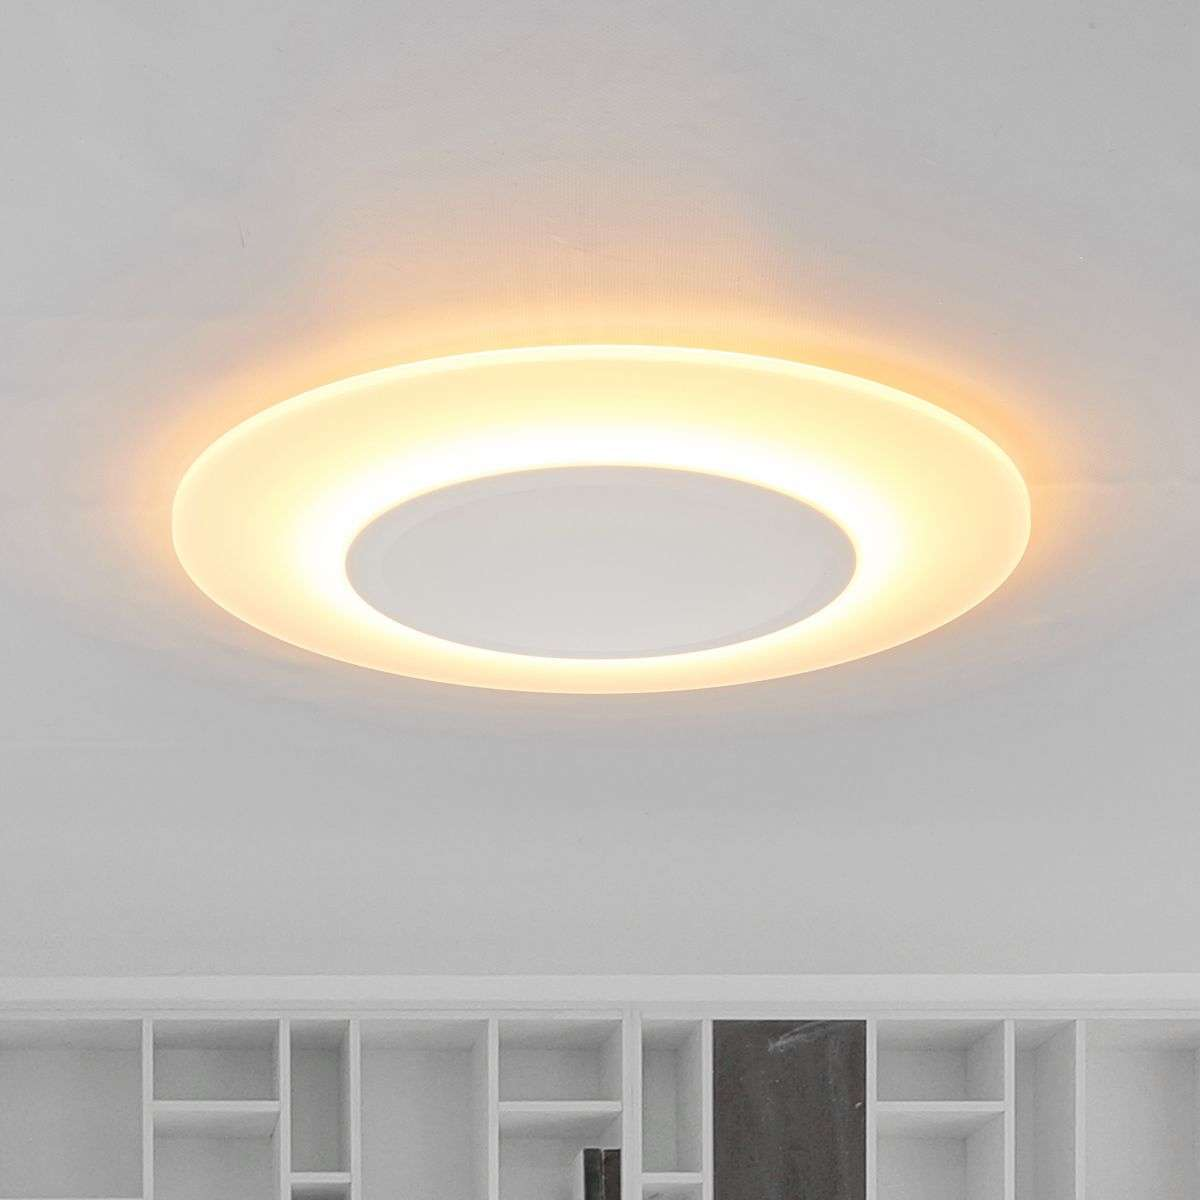 Very flat ceiling light led flat 1 200 lumens 7261139 31g very flat ceiling light led flat 1200 lumens aloadofball Gallery